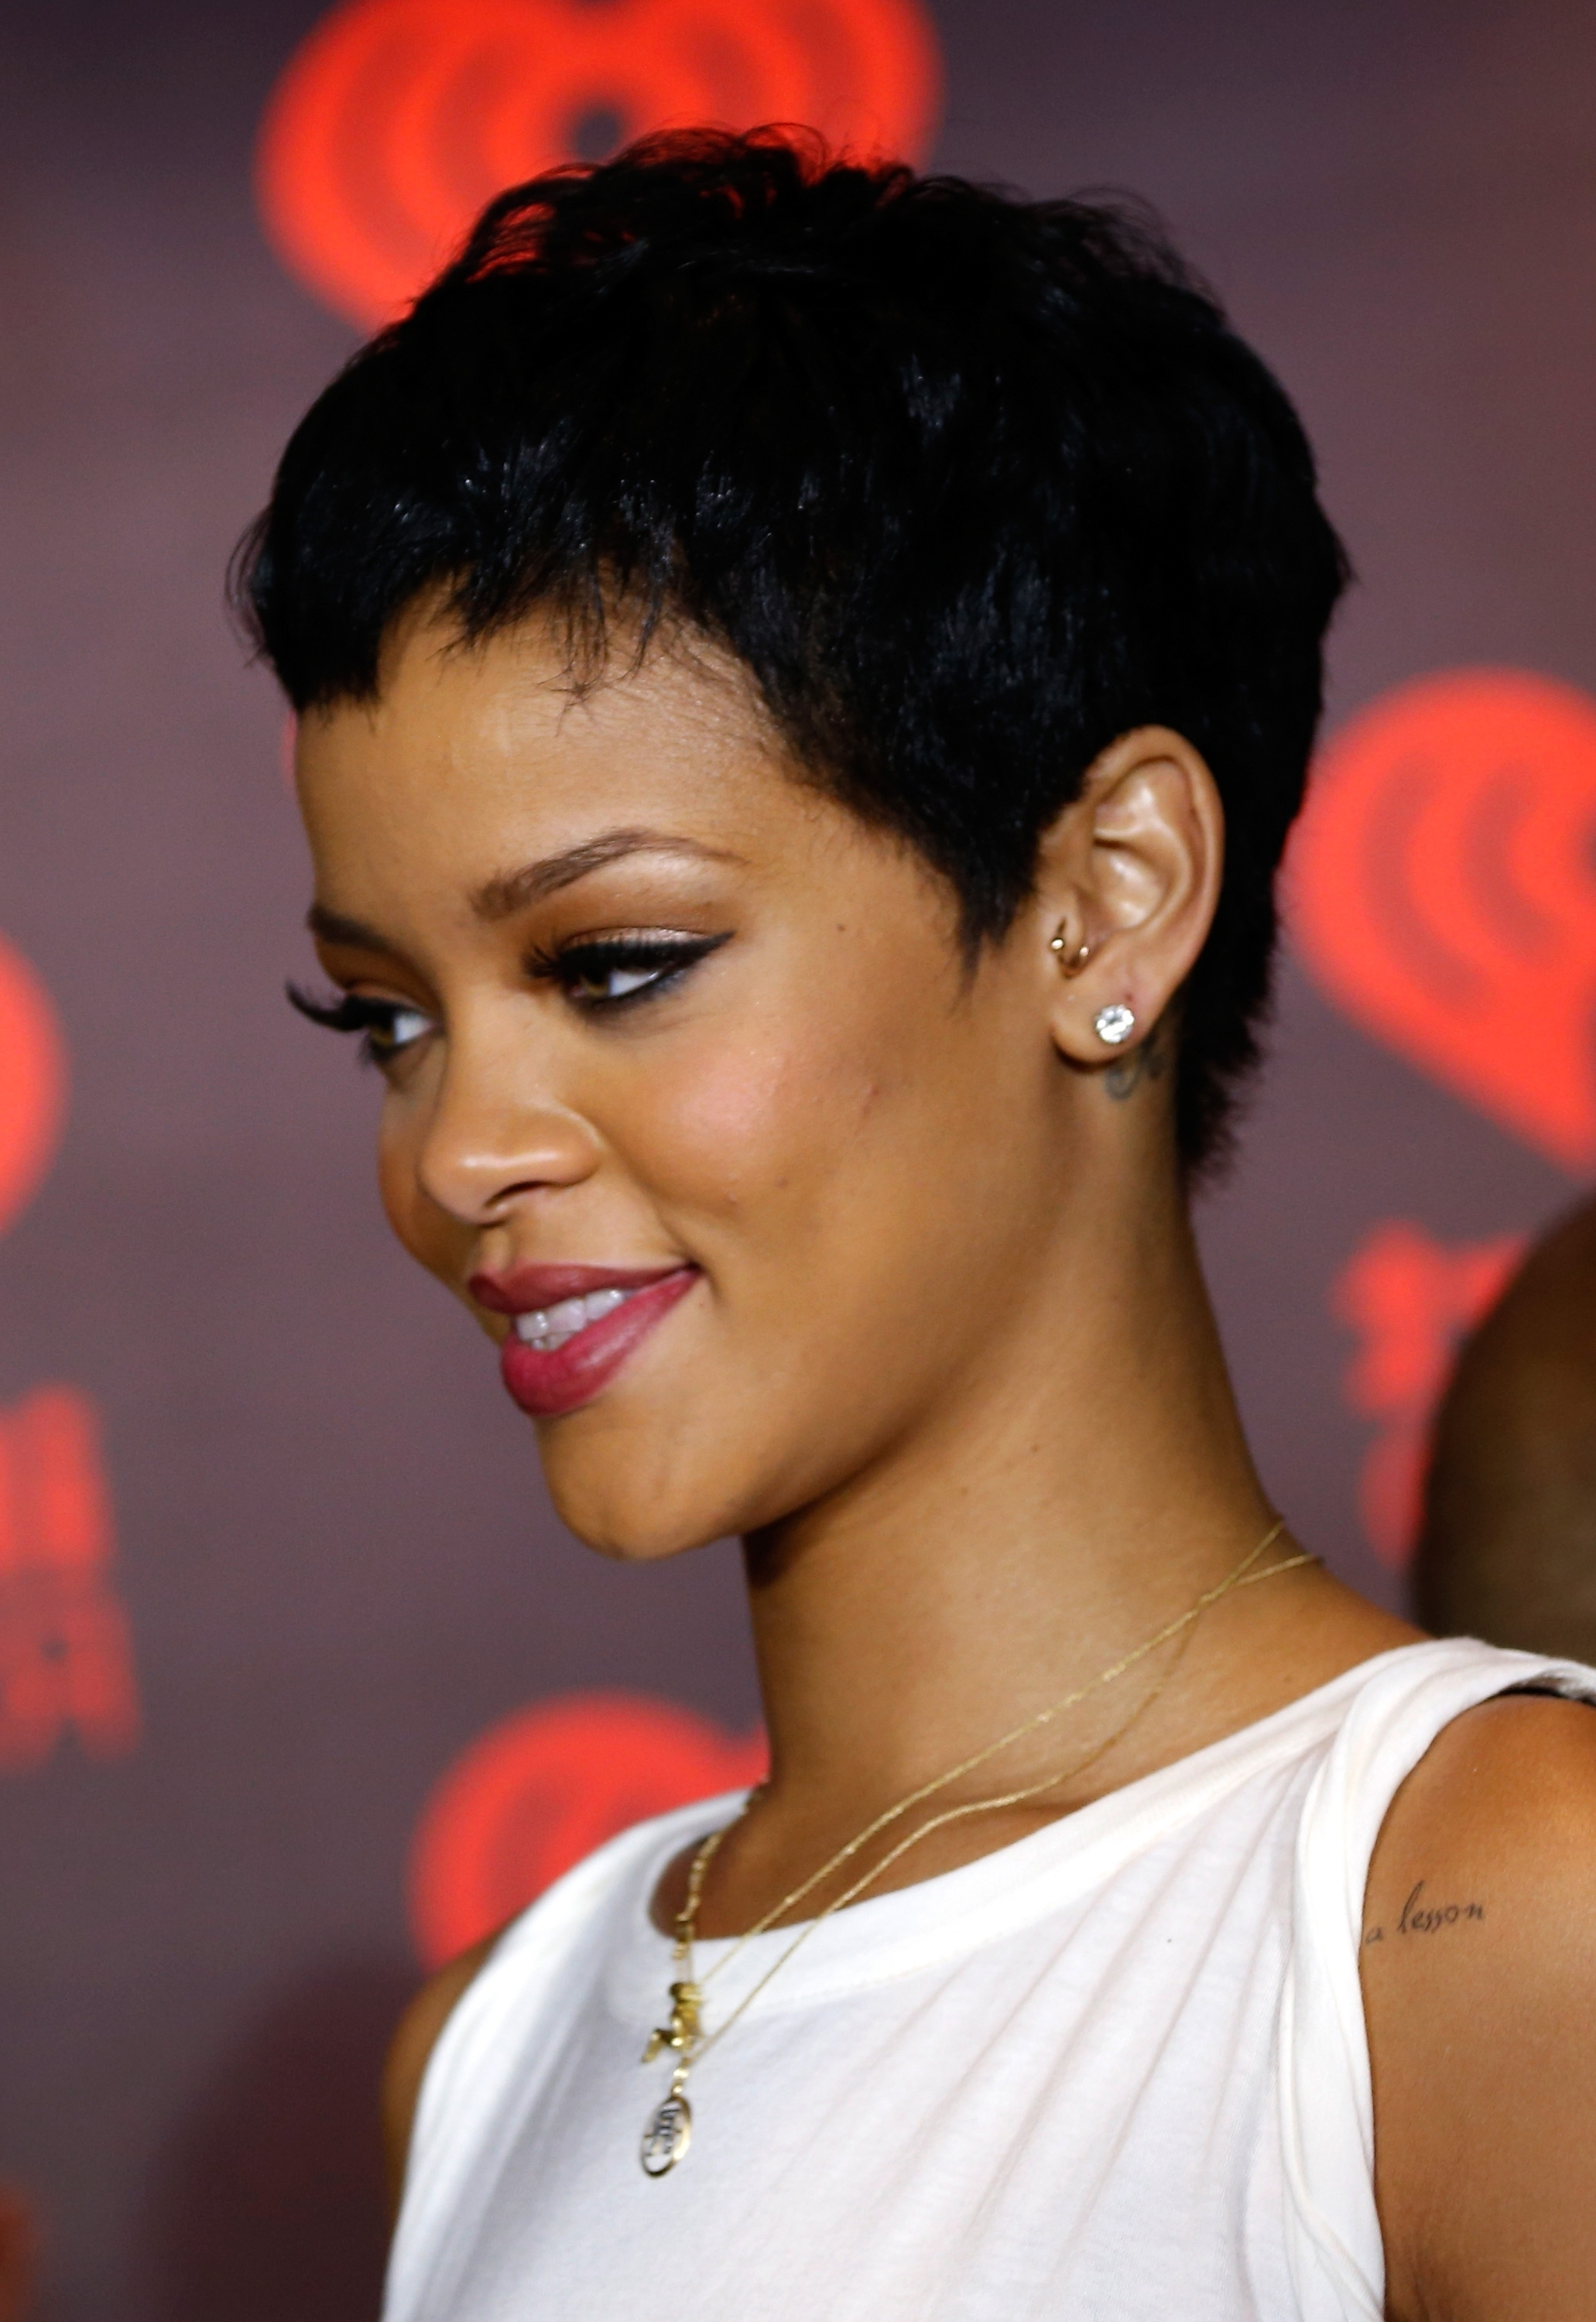 rehanna hair style rihanna haircut 2014 haircuts models ideas 4679